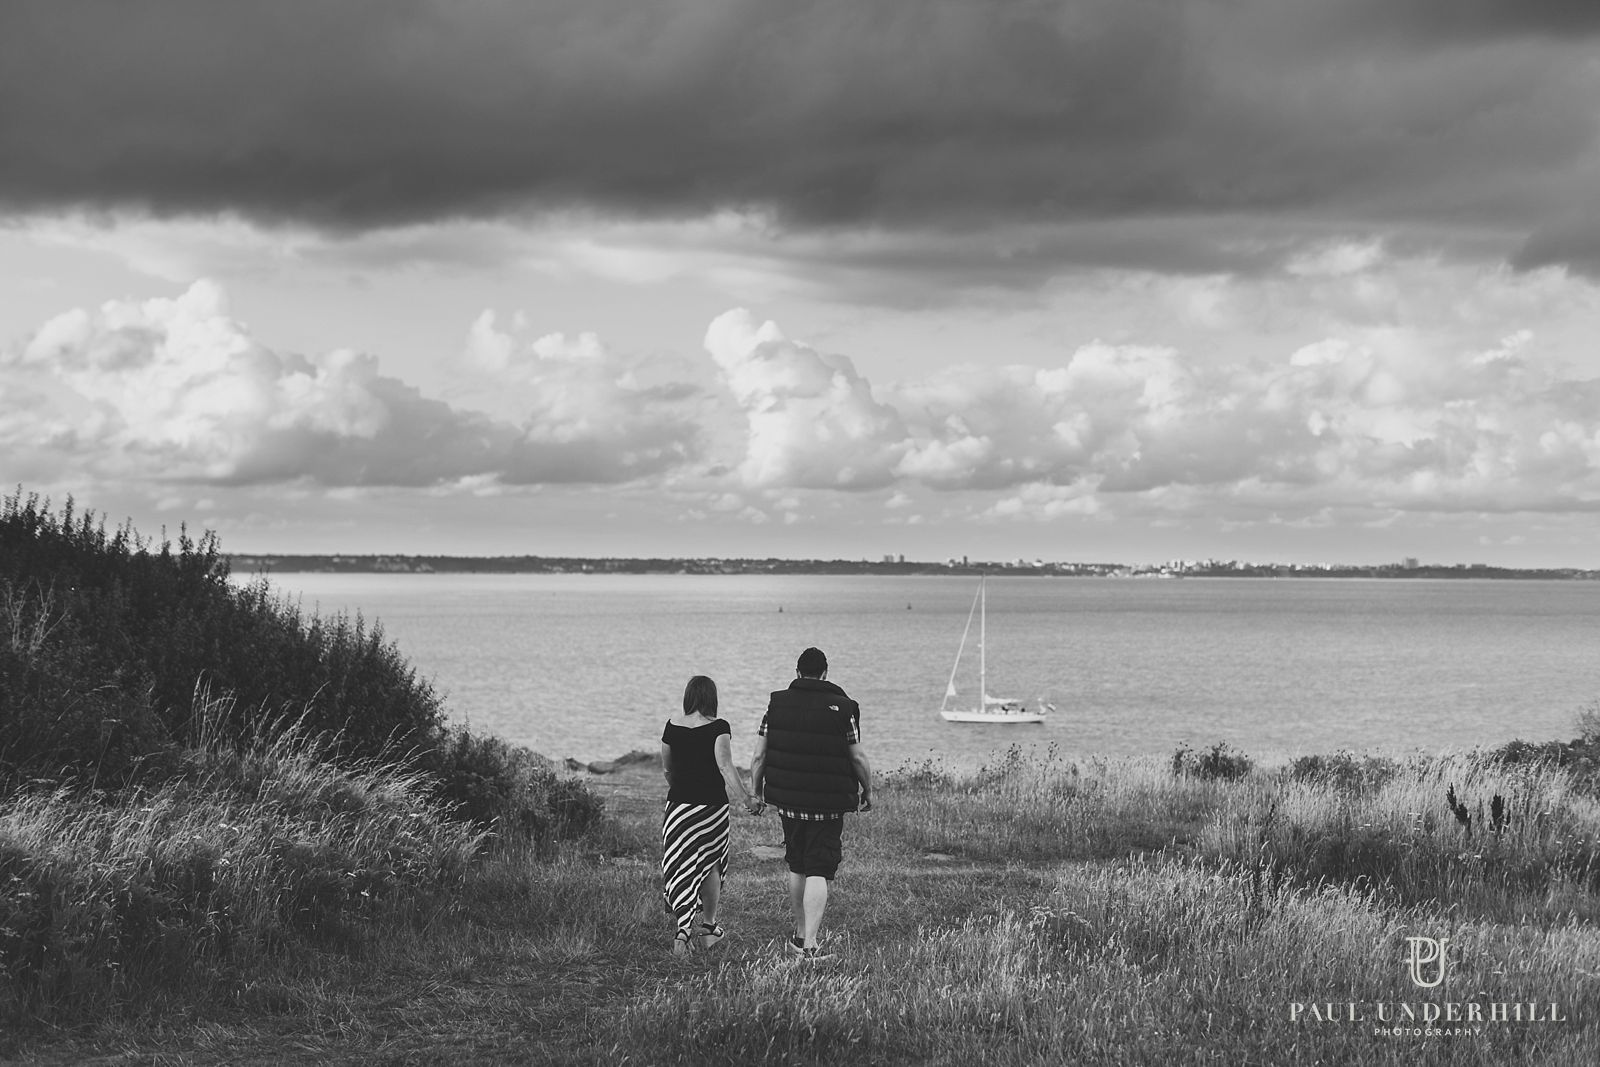 Reportage photography in Dorset